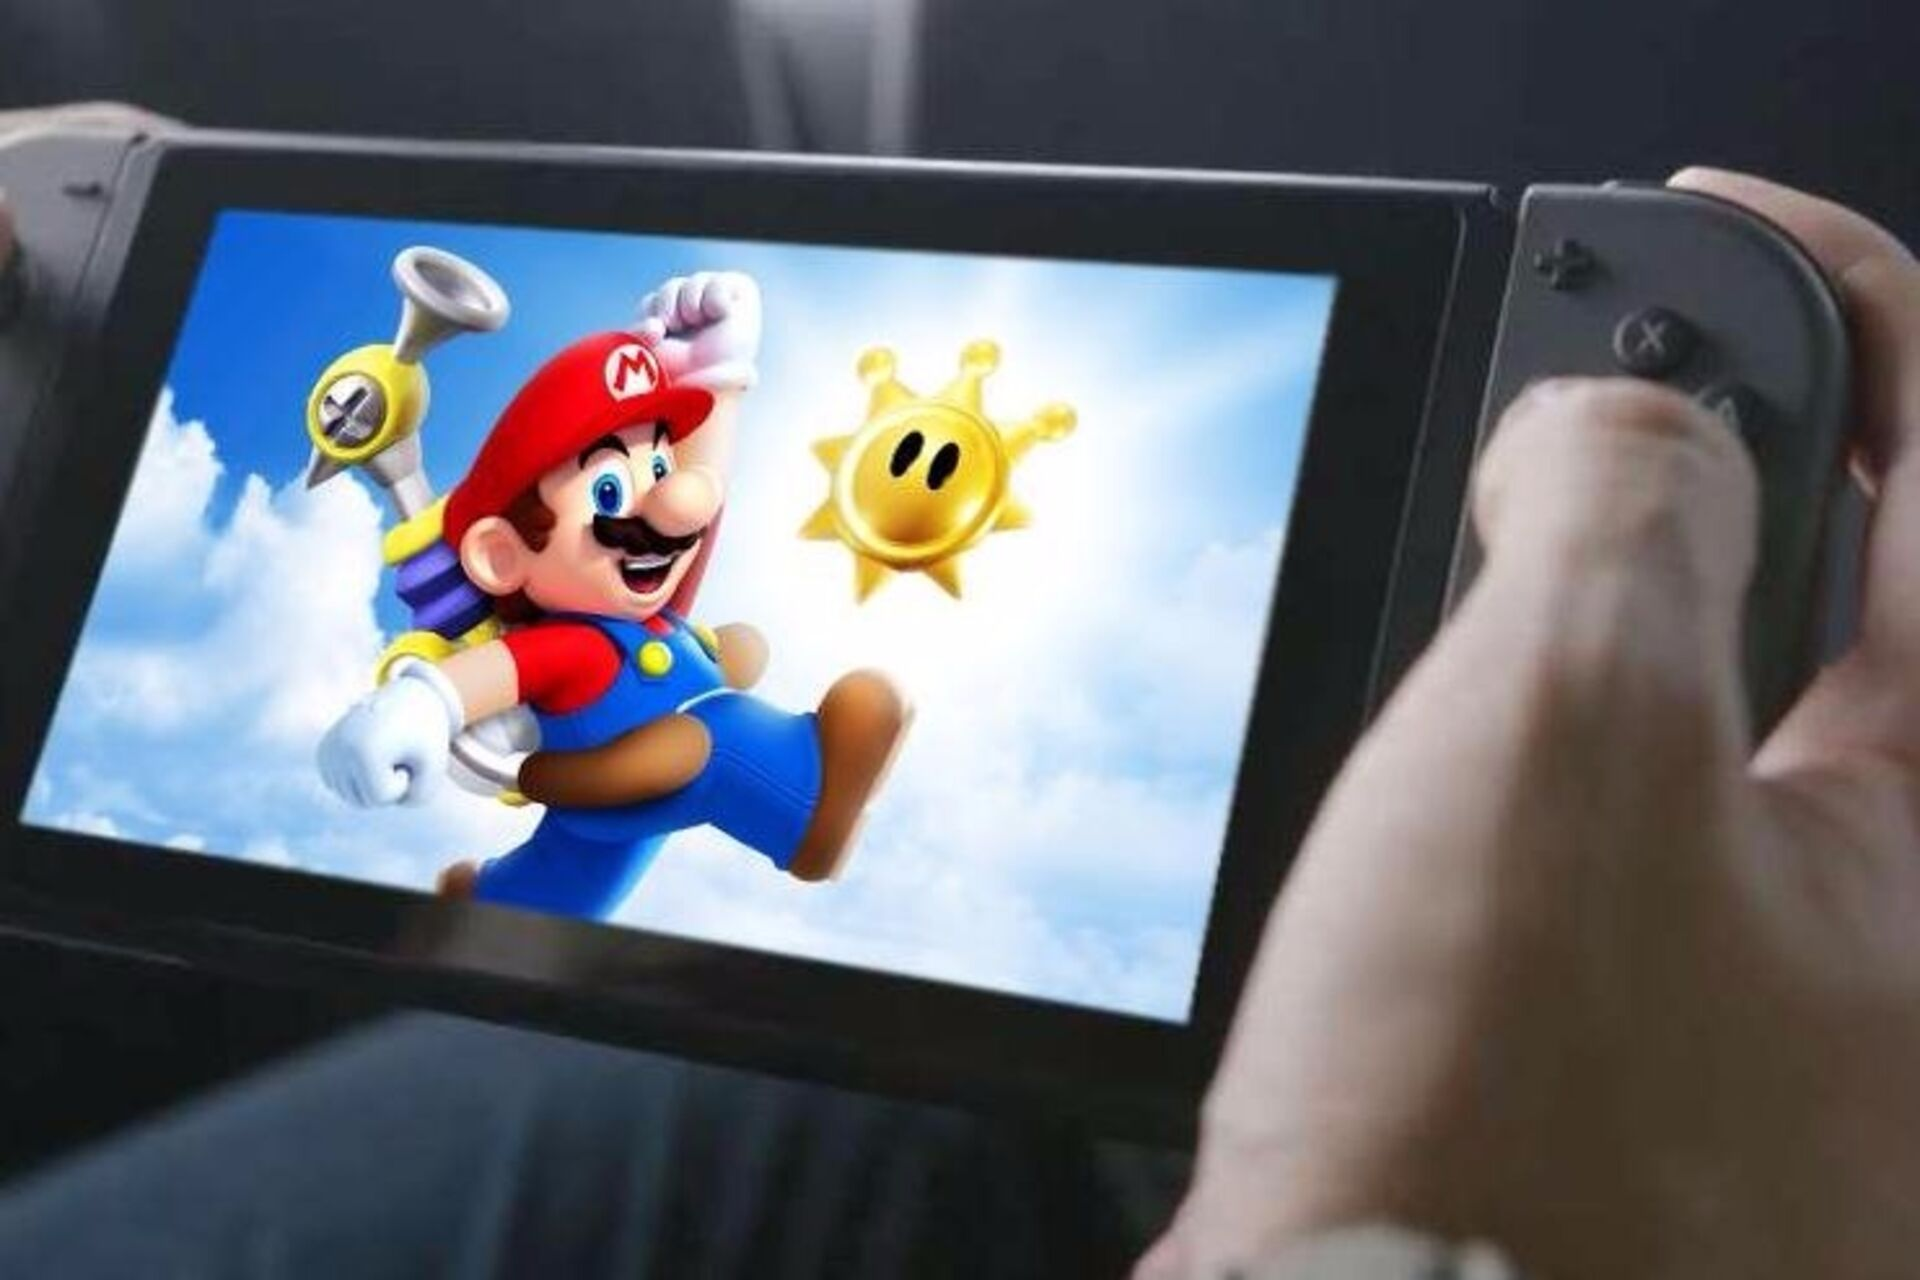 Sources: Nintendo Switch will have GameCube Virtual Console support